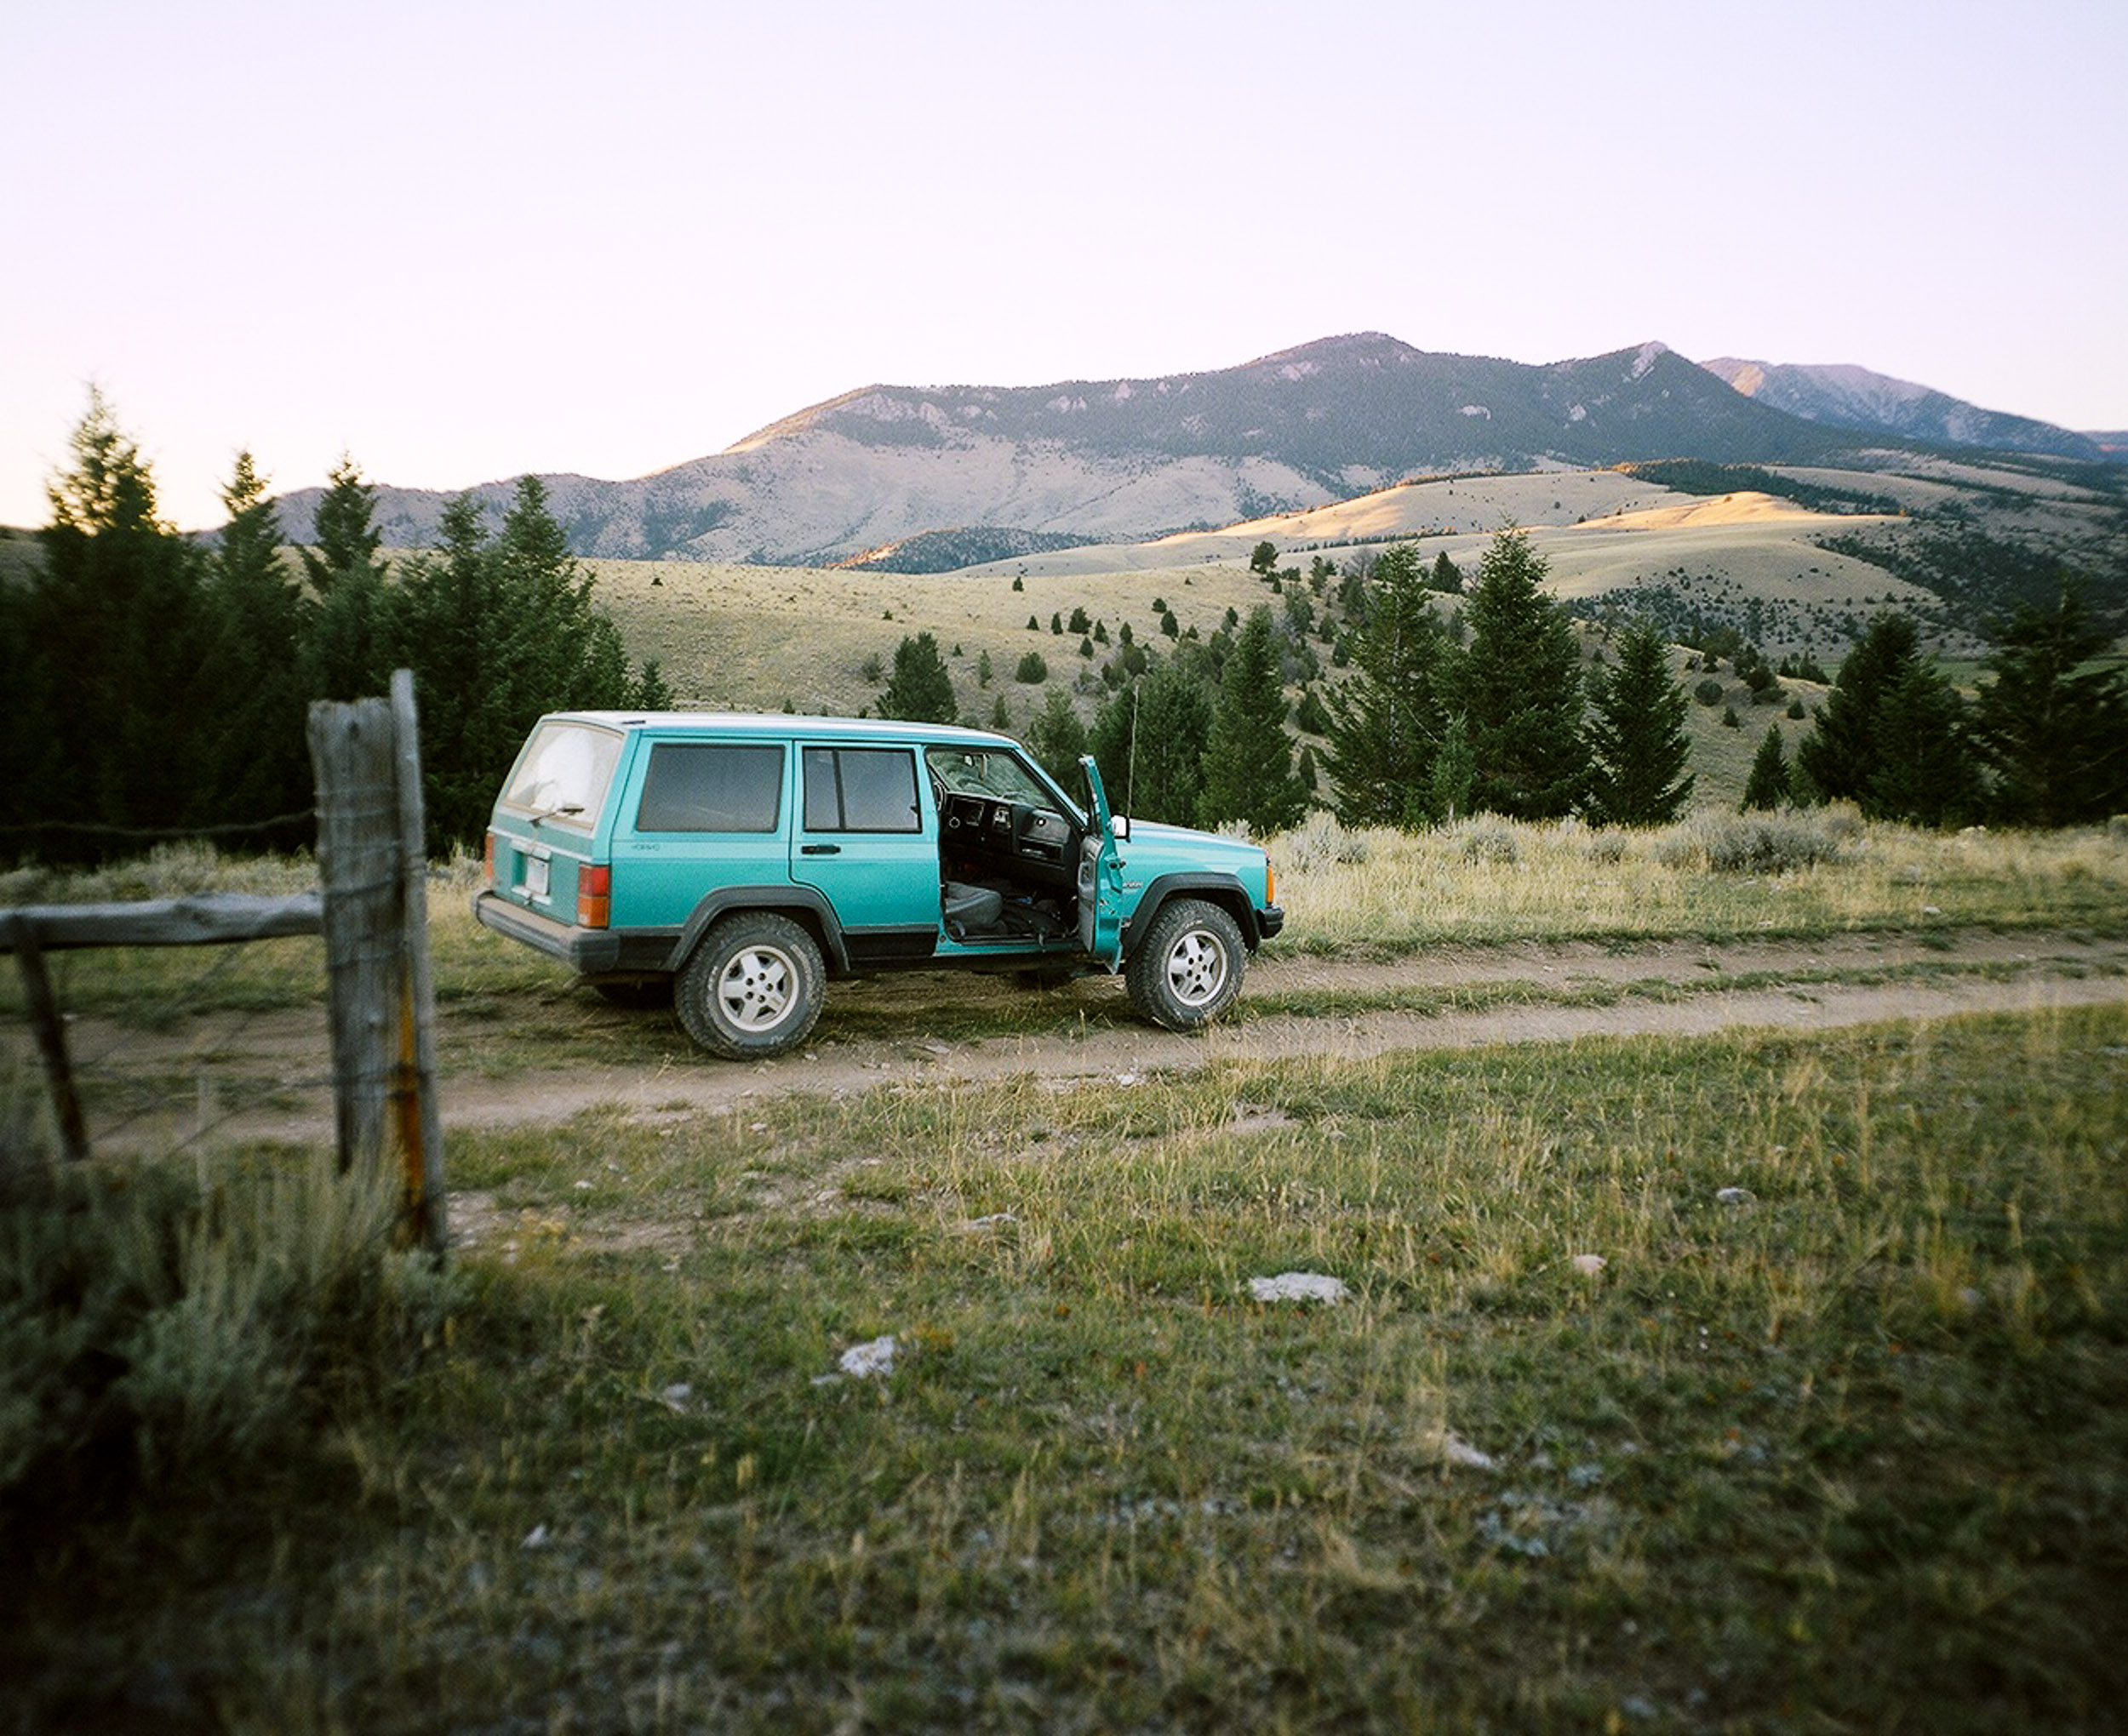 Green Jeep Cherokee with an open passenger door parked on a dirt road in Montana